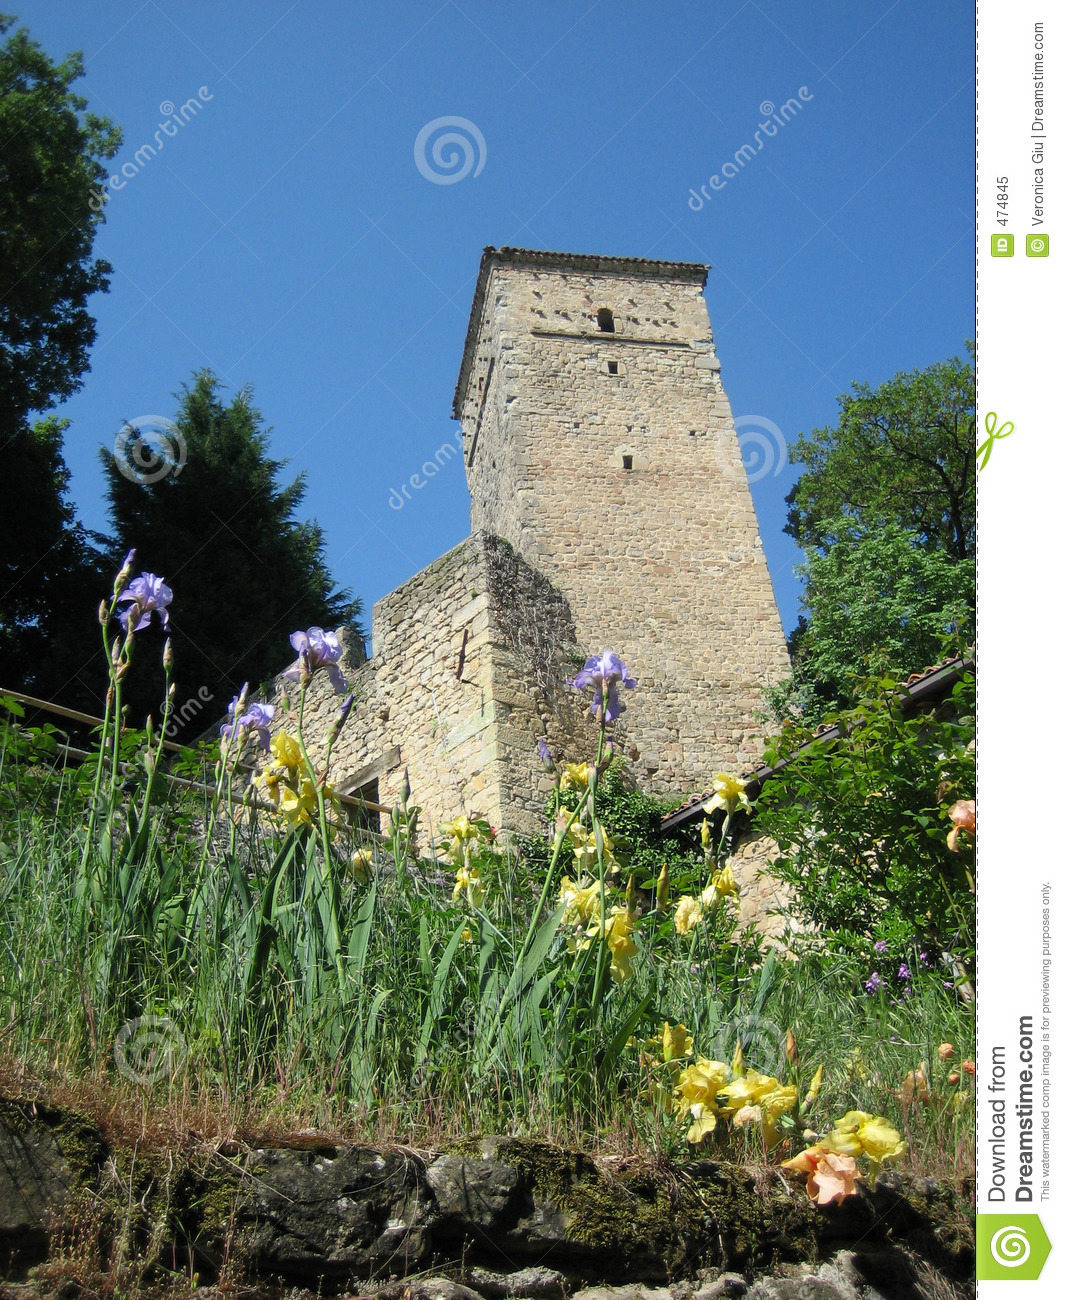 Download Country tower stock image. Image of stones, modena, green - 474845